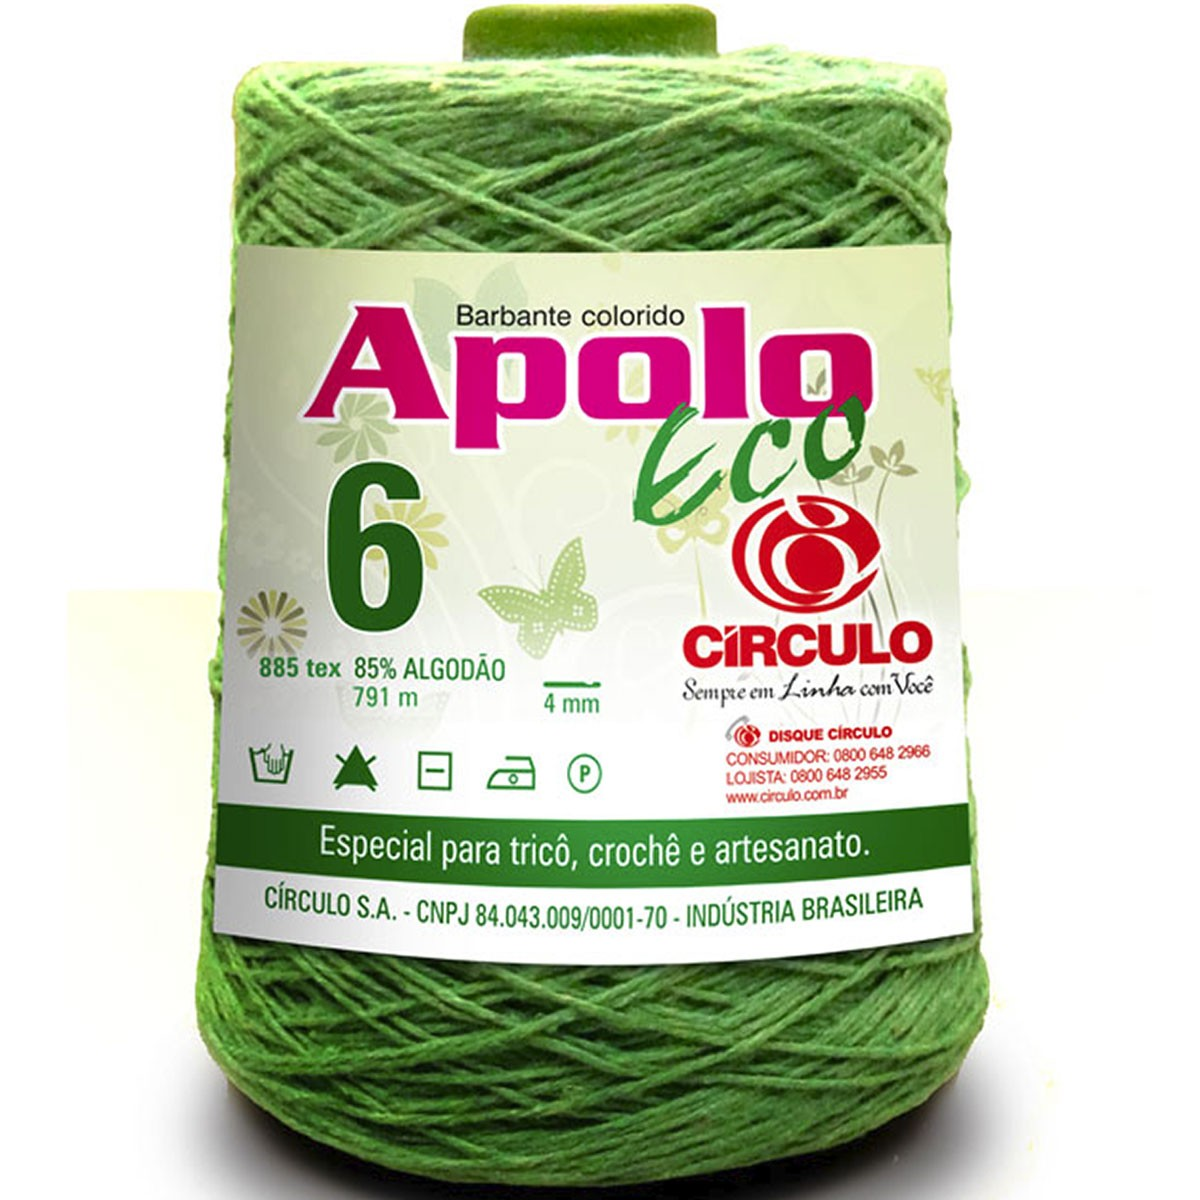 Barbante Colorido Apolo ECO 4/6 600g  Círculo S/A